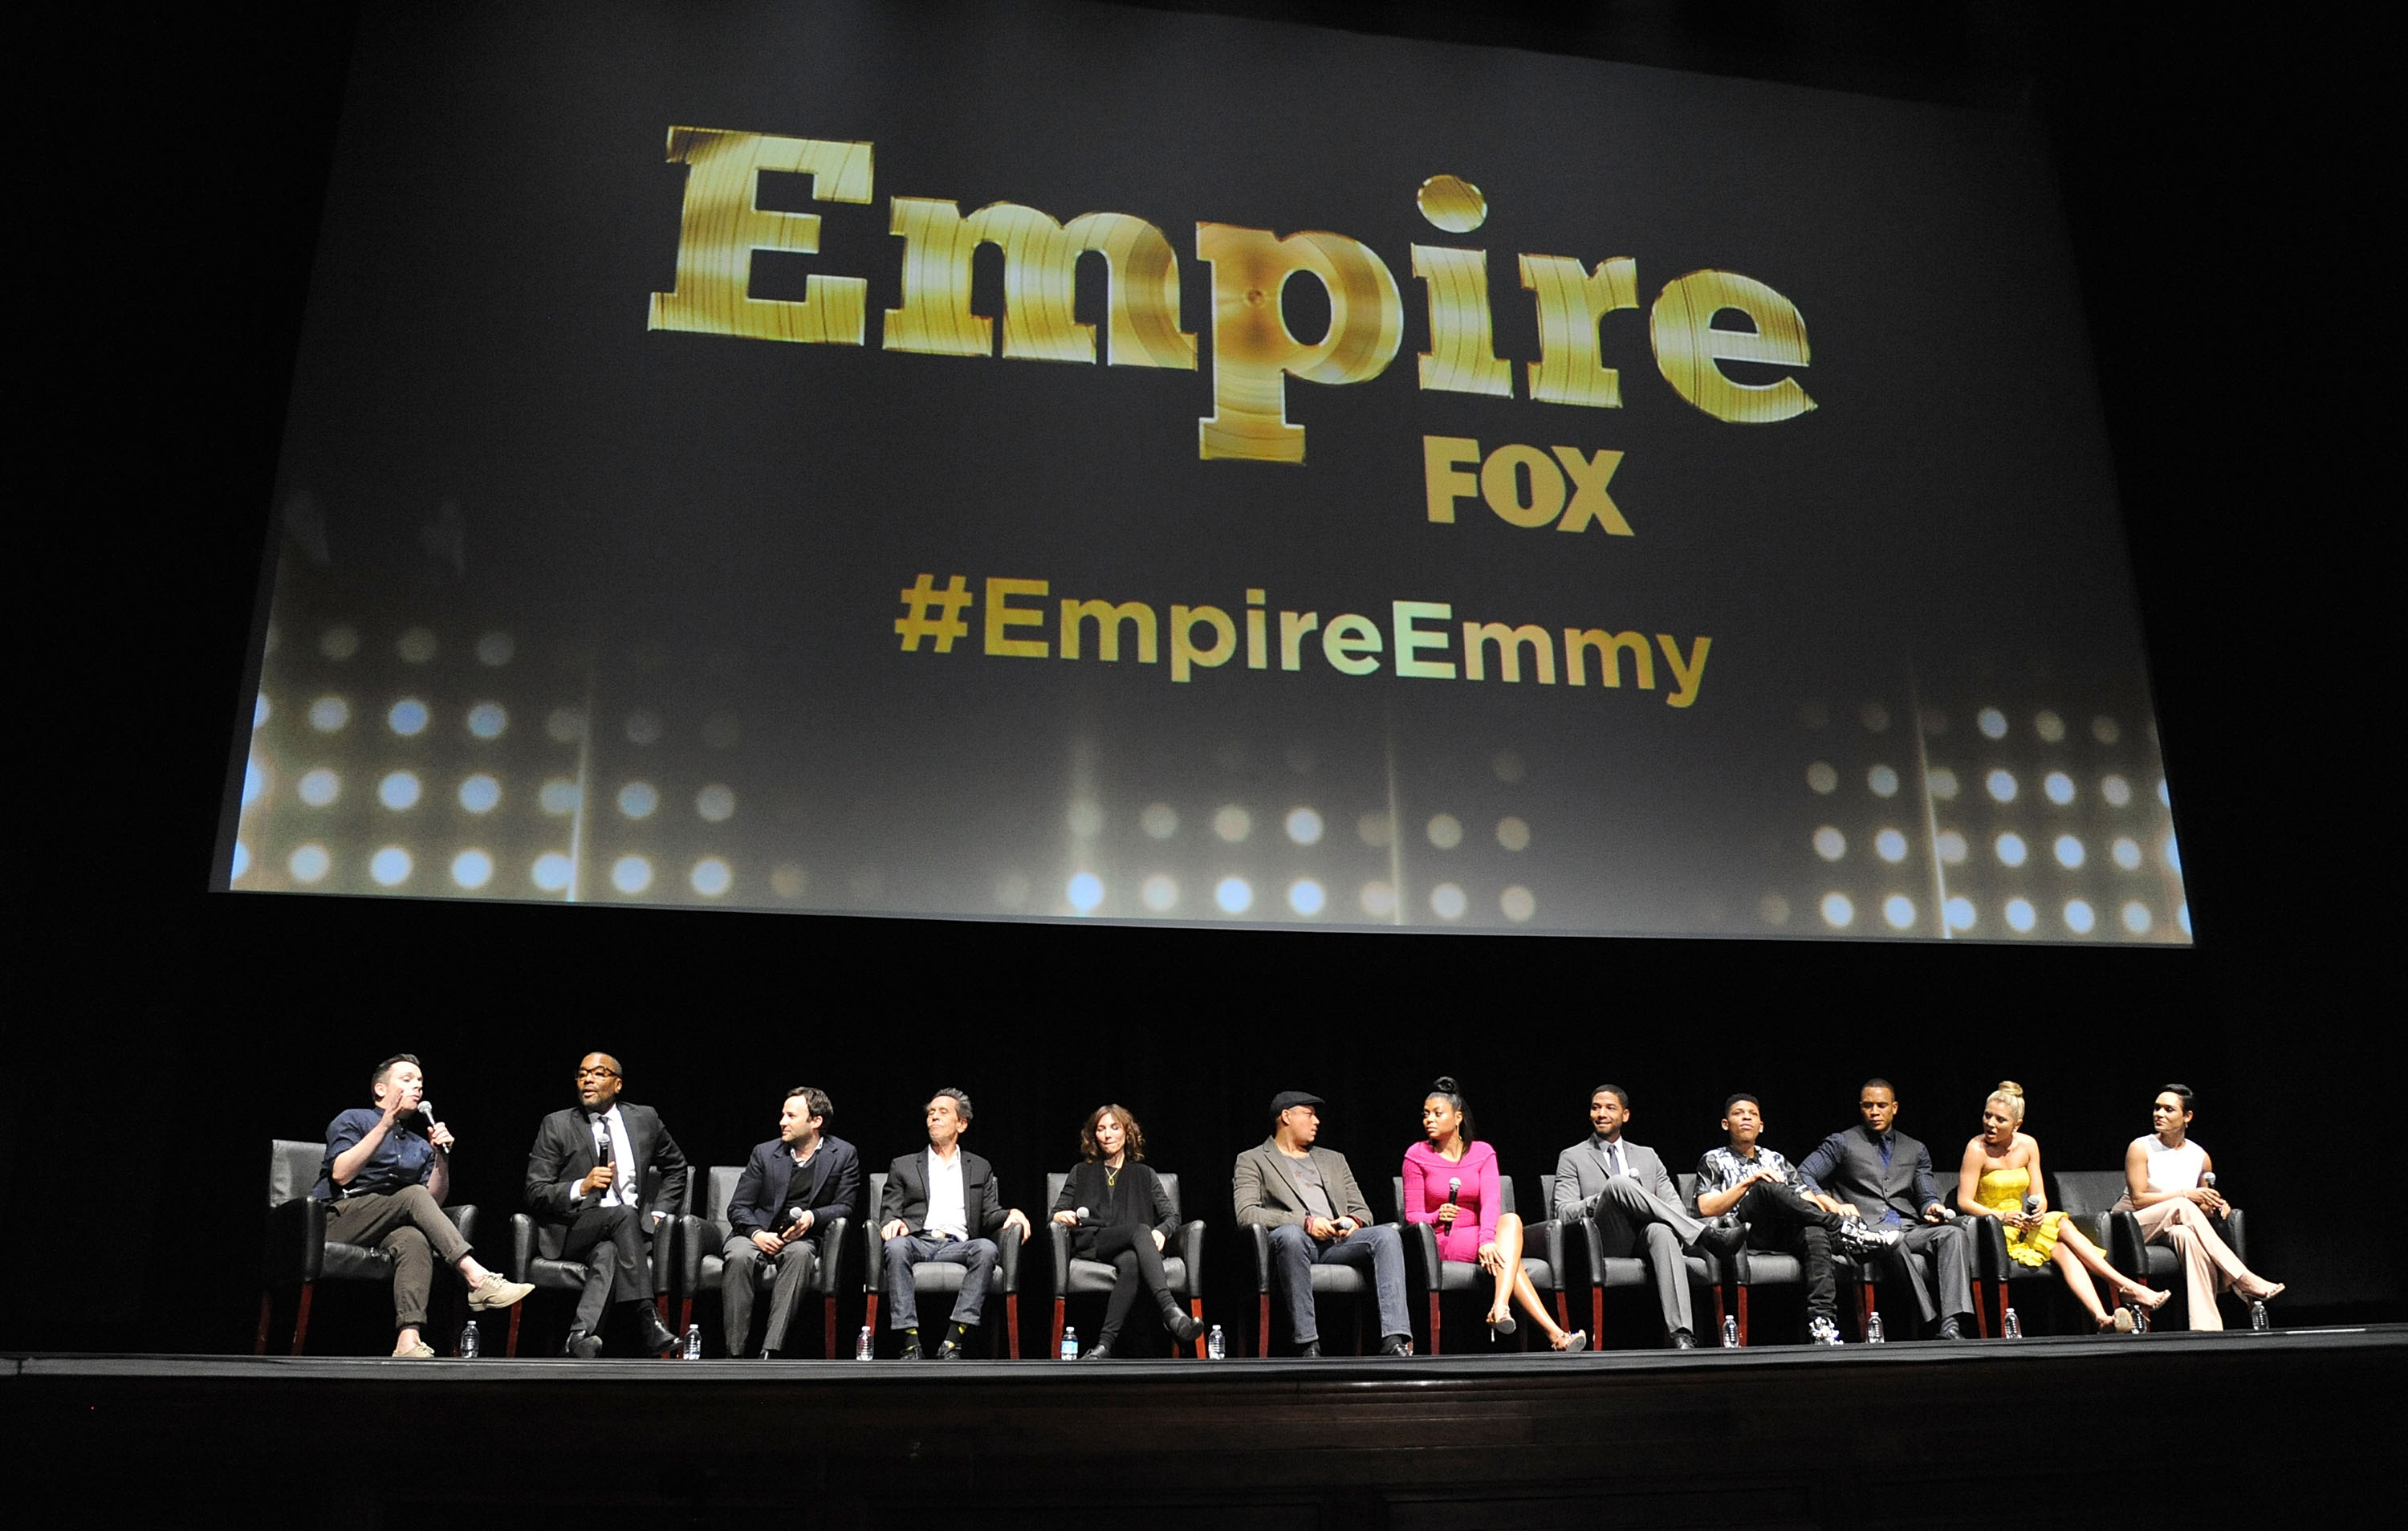 'Empire' To End On Fox After Its Sixth Season